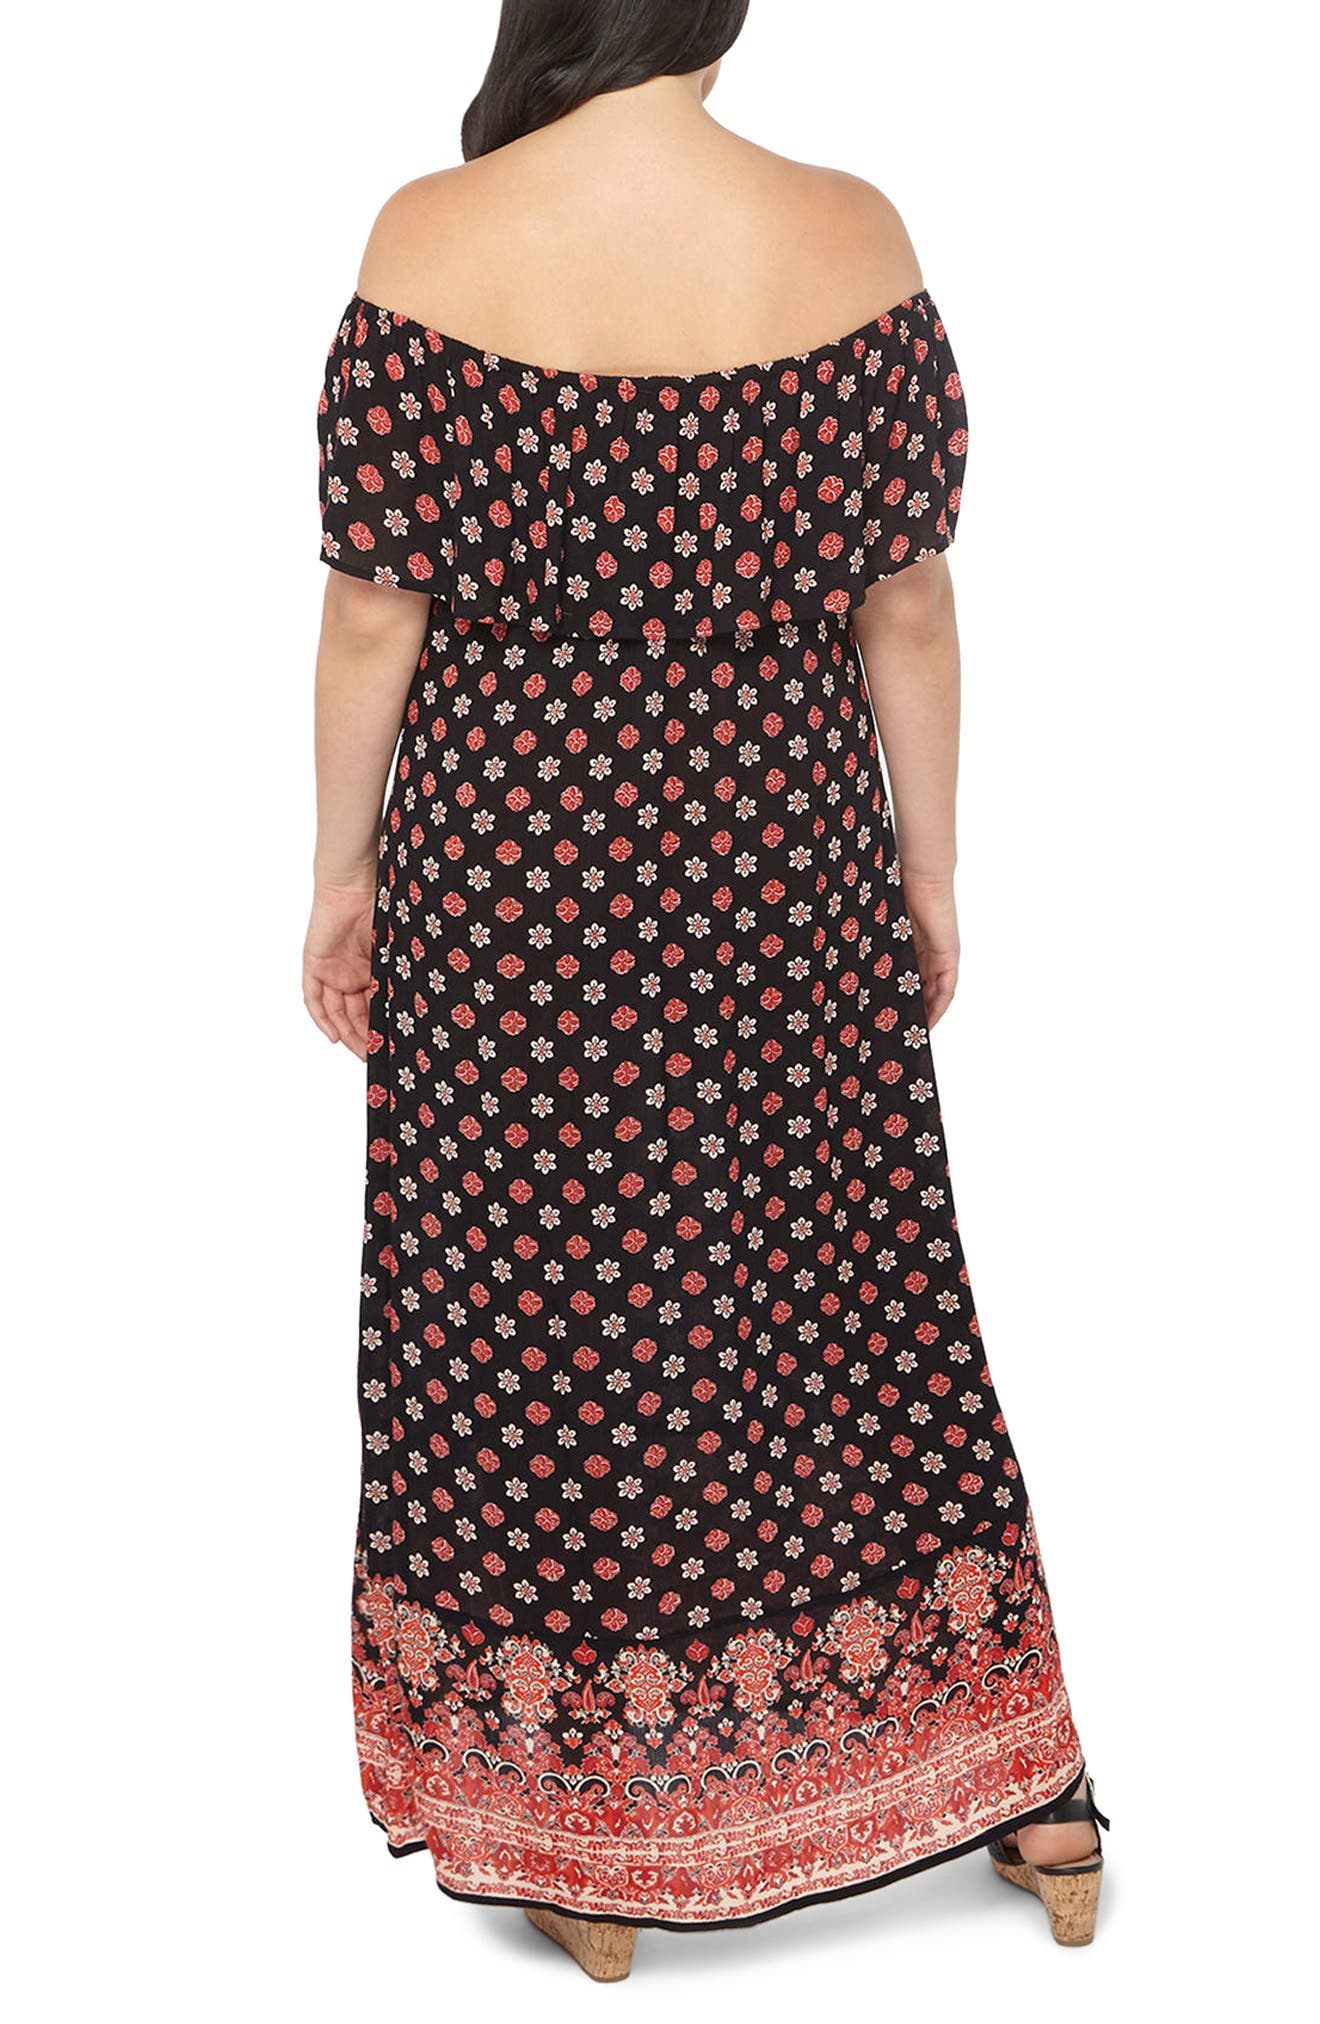 Border Print Maxi Dress,                             Alternate thumbnail 2, color,                             010